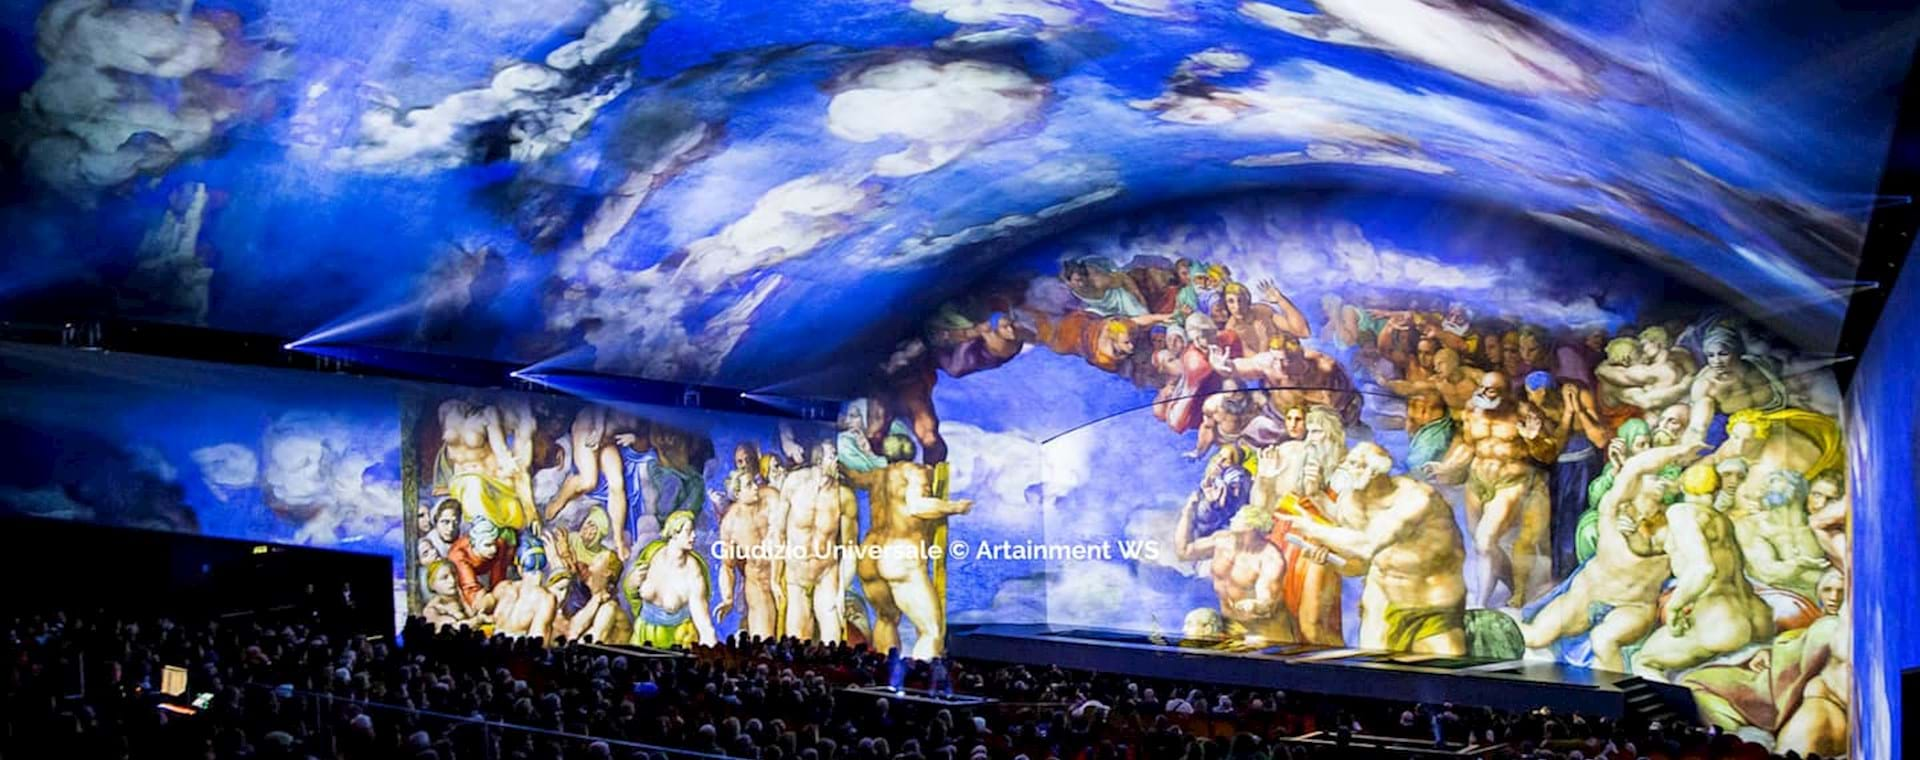 Live Musical Show: Michelangelo's The Last Judgement Performance with Music by Sting